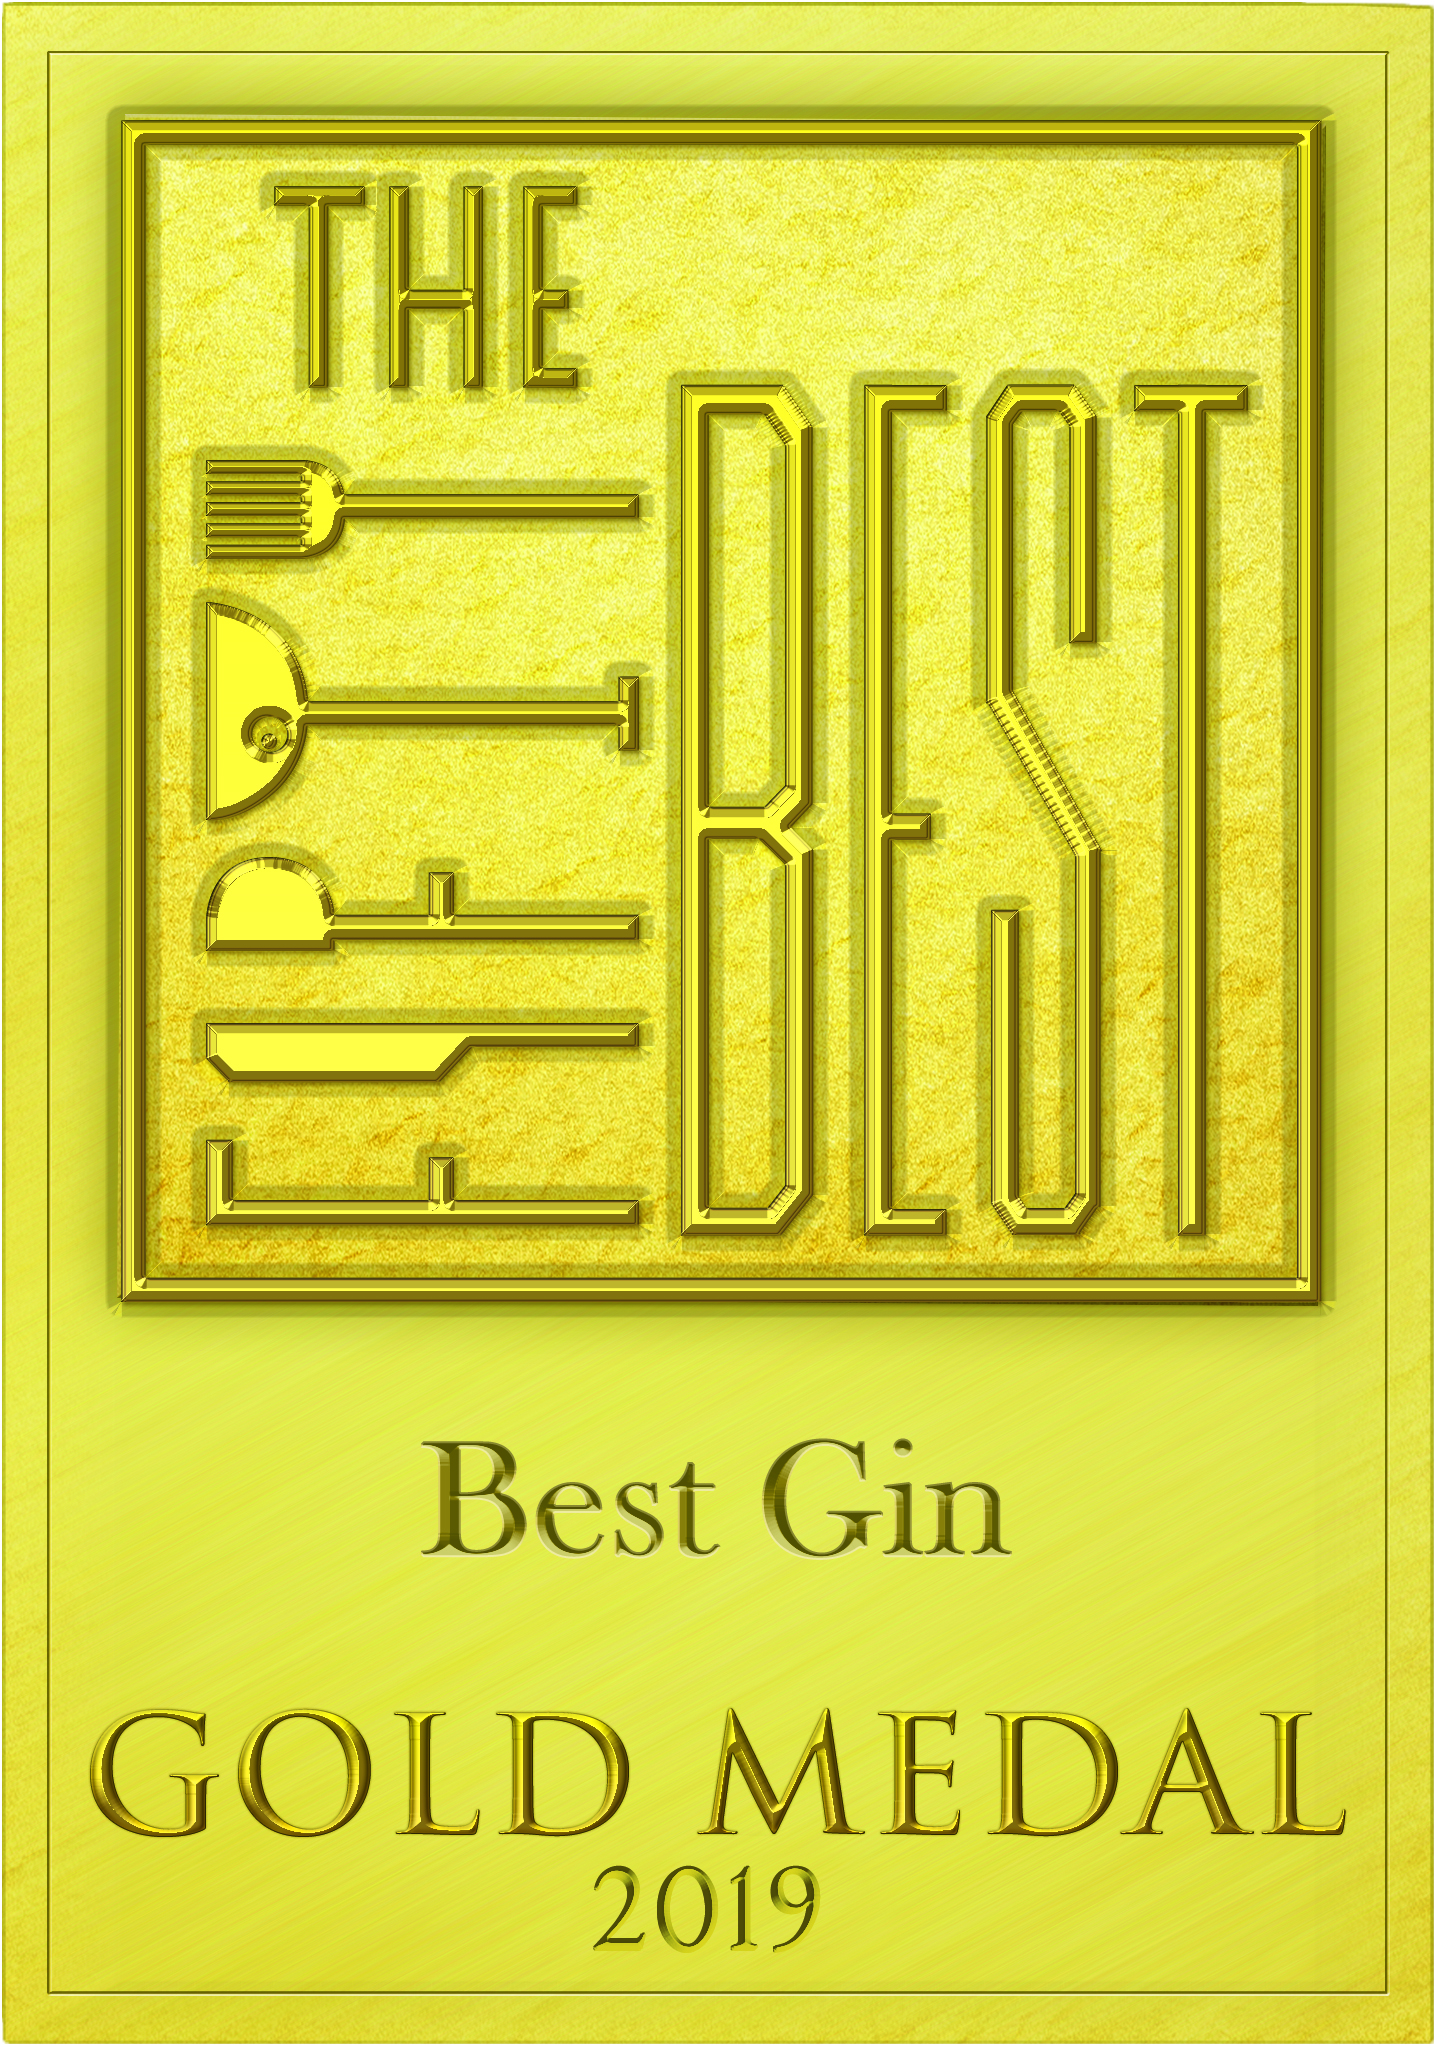 TheFIftyBest_Gin_GoldMedal_2019